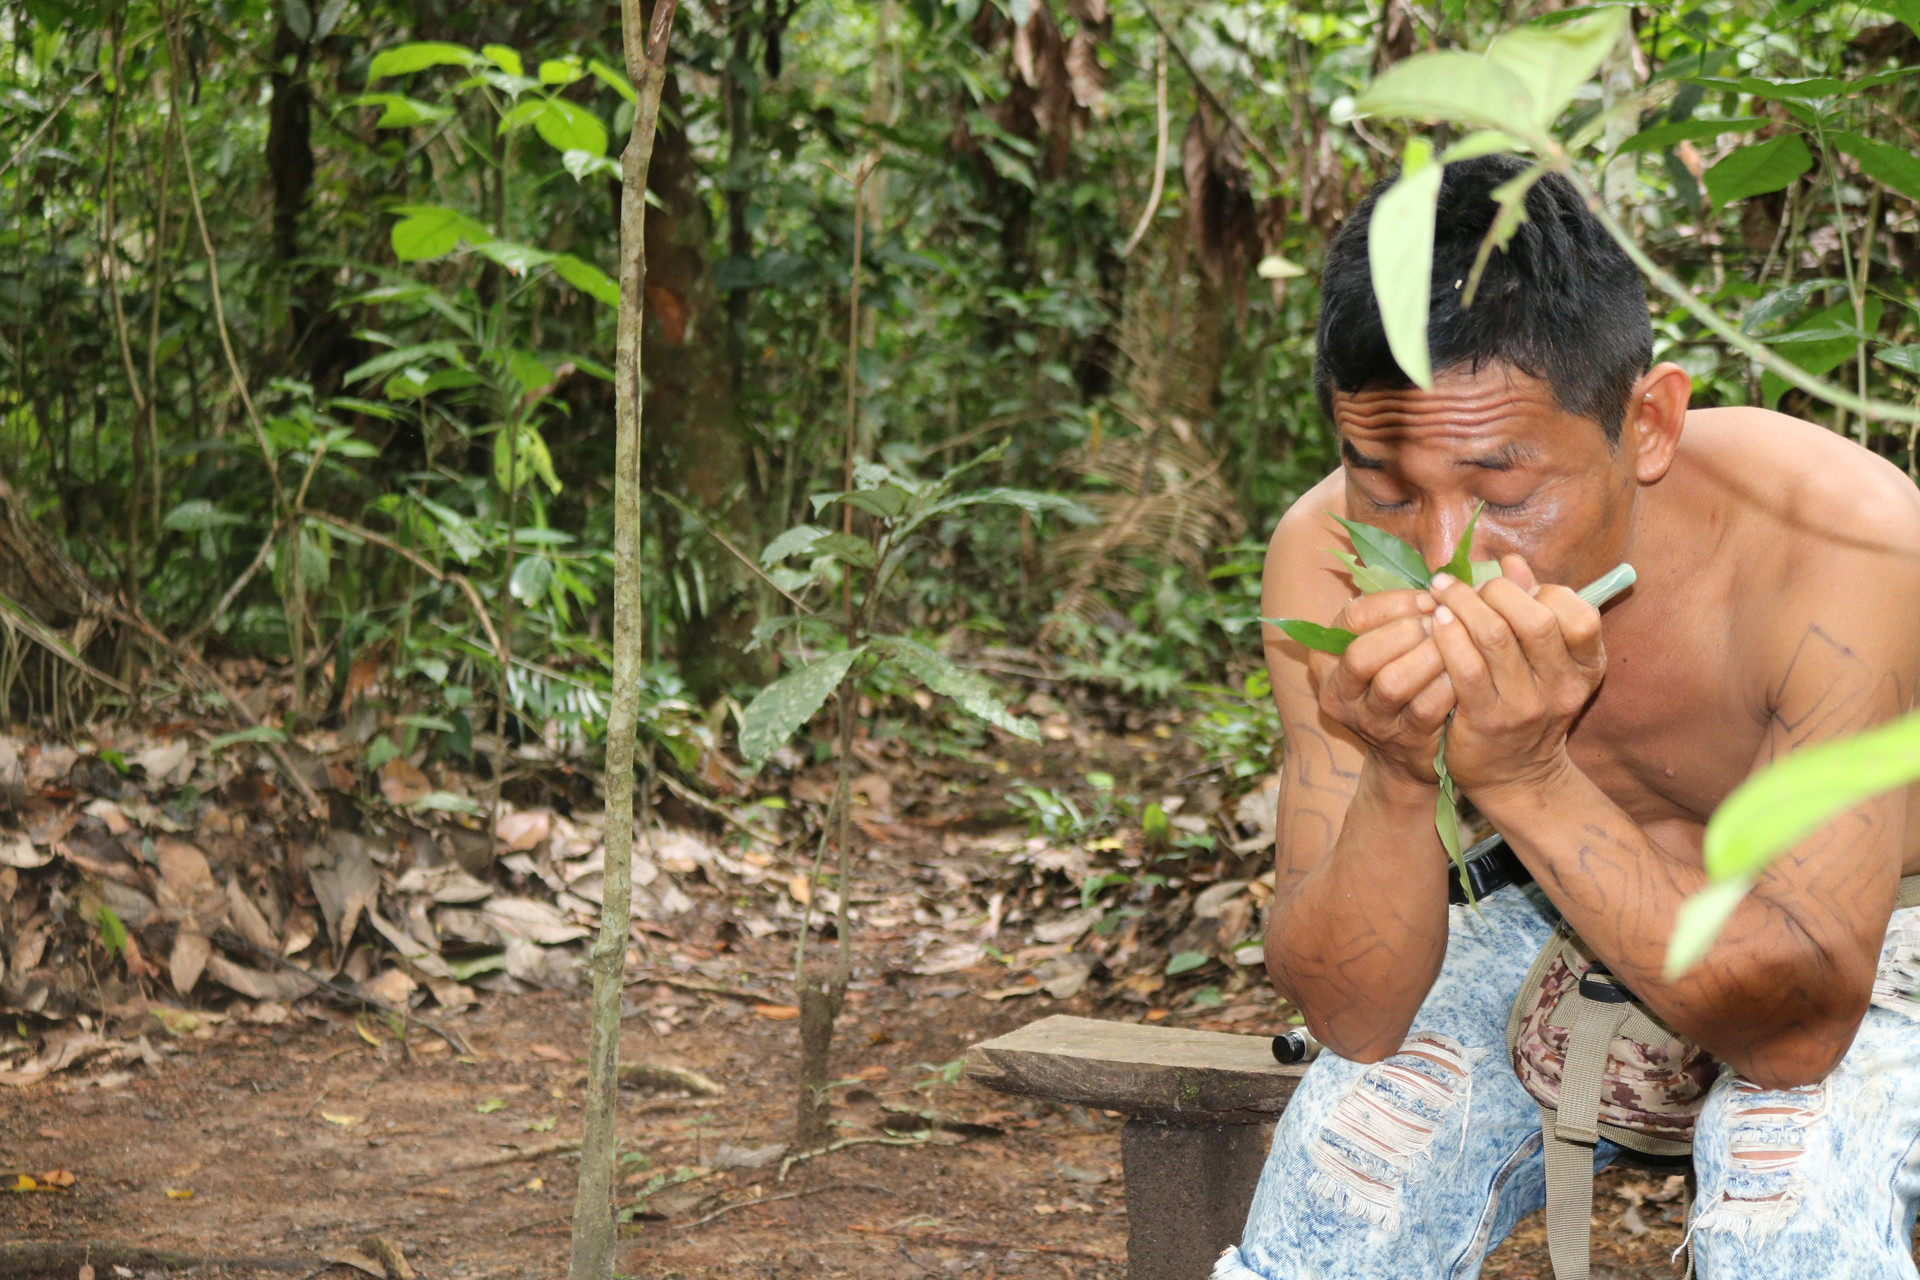 The forest is also a pharmacy for the people. Here they find medicines that relax and help against any sufferings, such as burns, problems during pregnancy, hair loss or even jealousy.